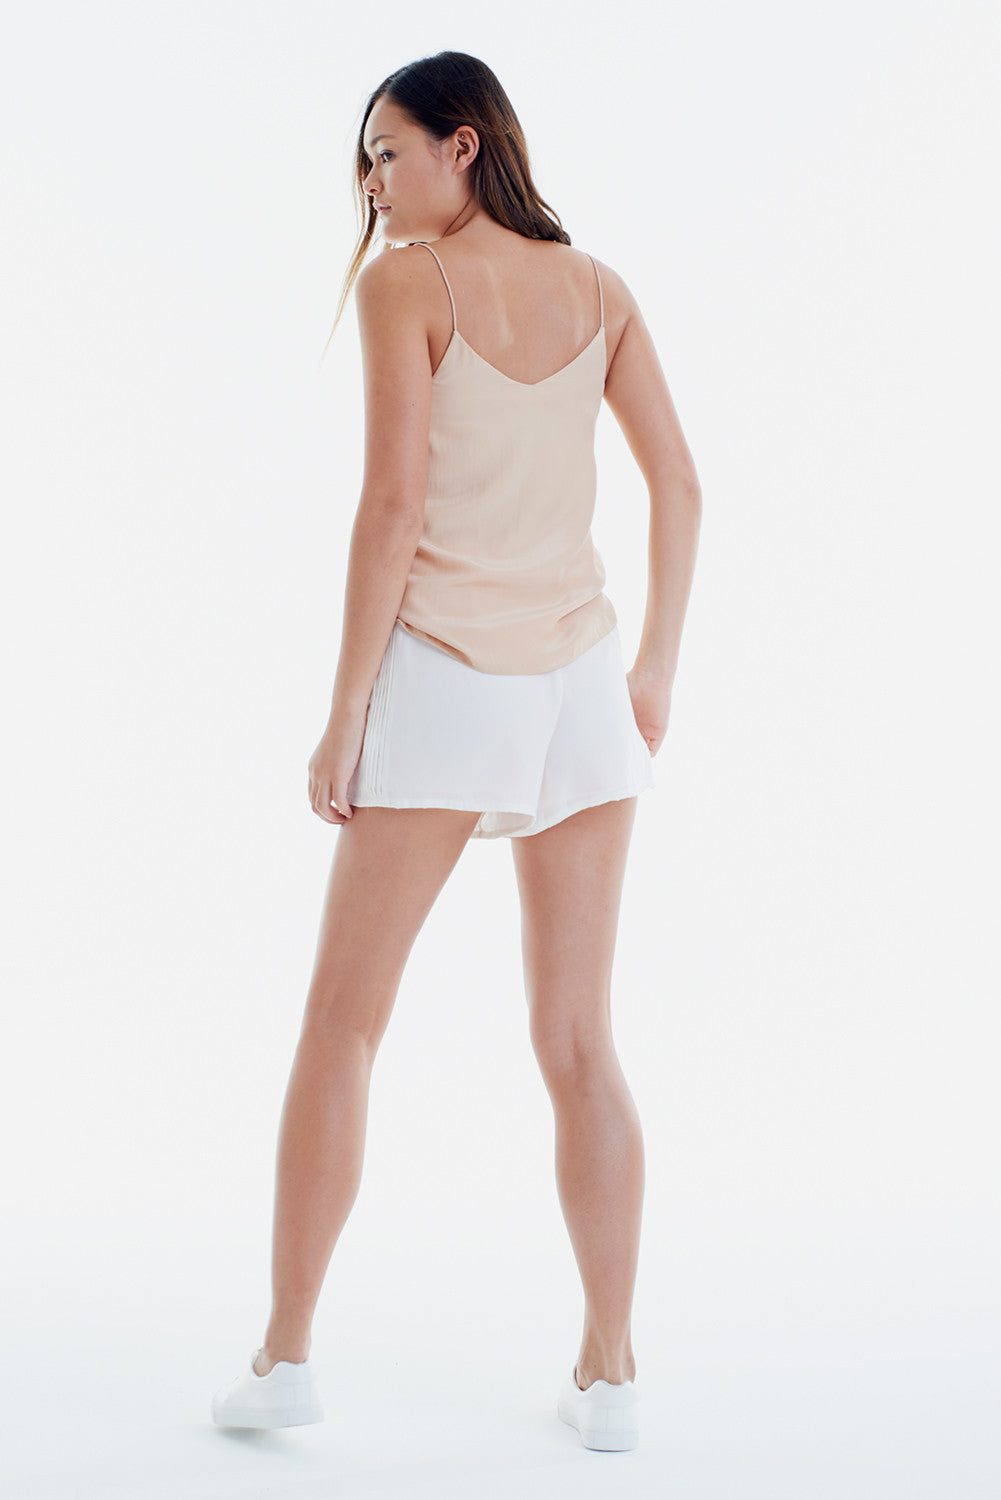 TWO PIECE SET: ARE YOU NUDE SLIP ON CAMISOLE + PEARL WHITE SILK SHORTS